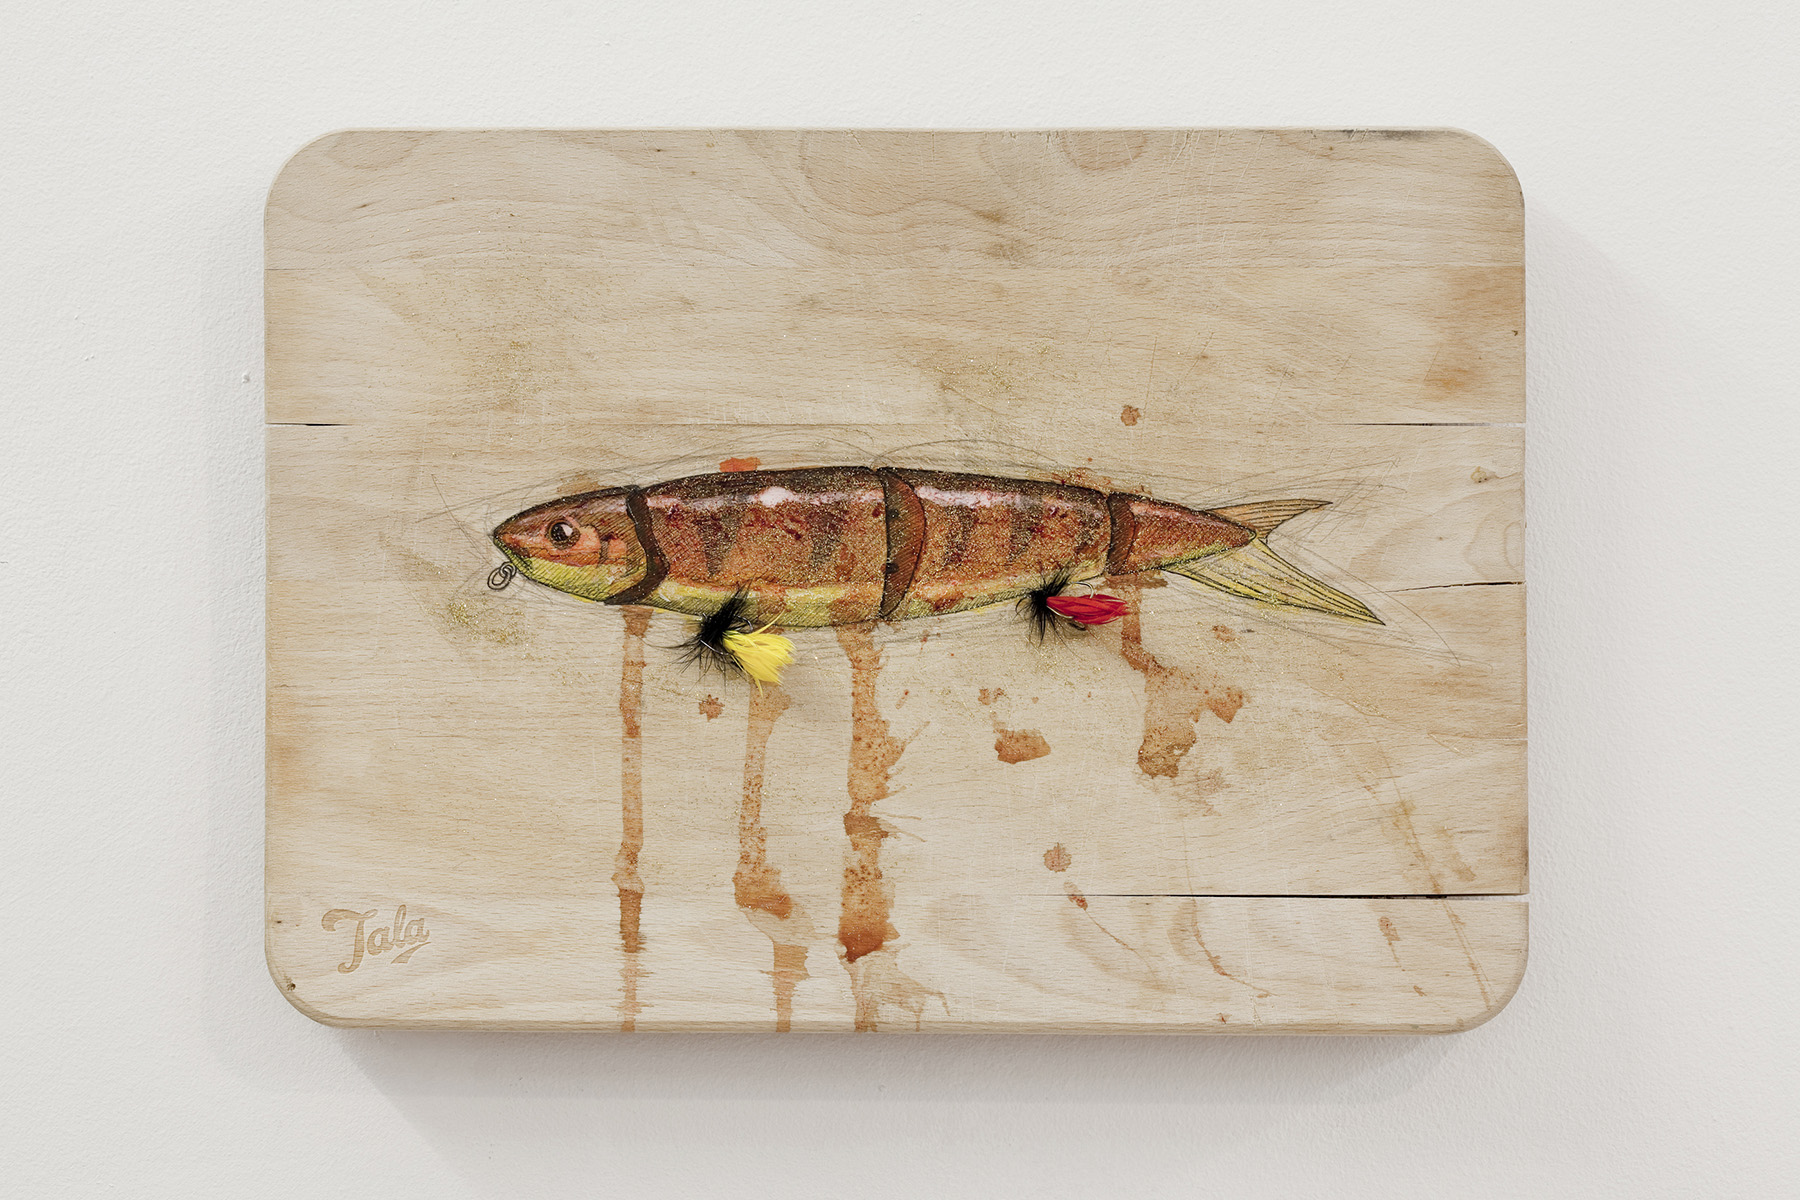 Fishing Lure: Golden Ambulance , 350x250mm, blood, pencil, ink, fishing hooks, glitters on used chopping board from the gallery, 2013